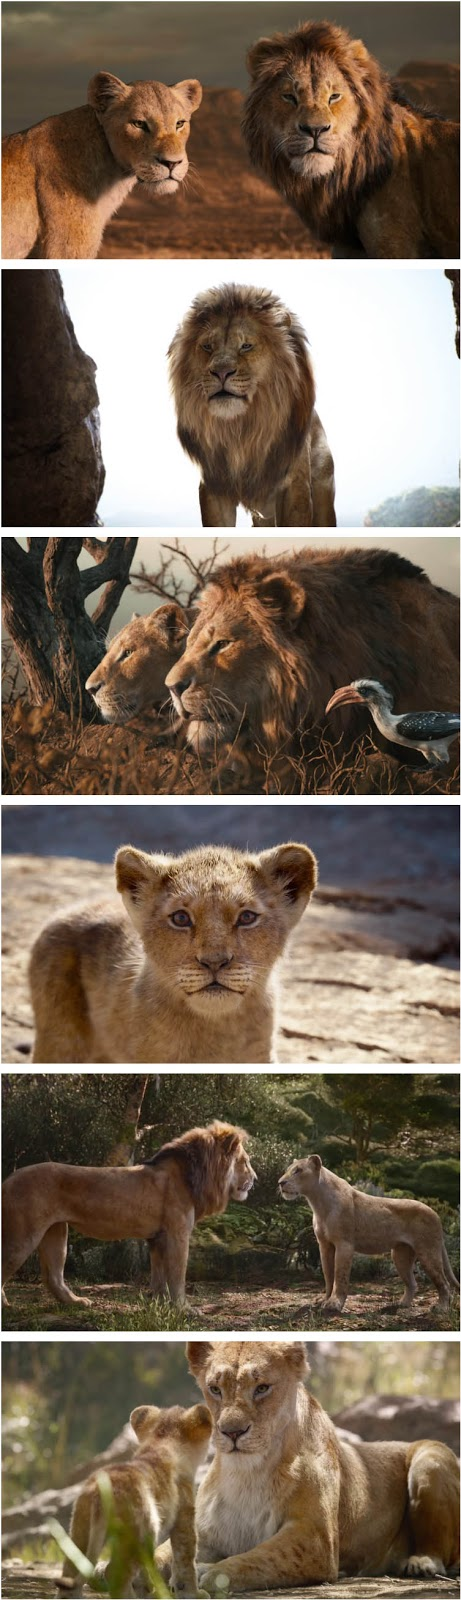 the lion king full movie download in hindi filmyzilla